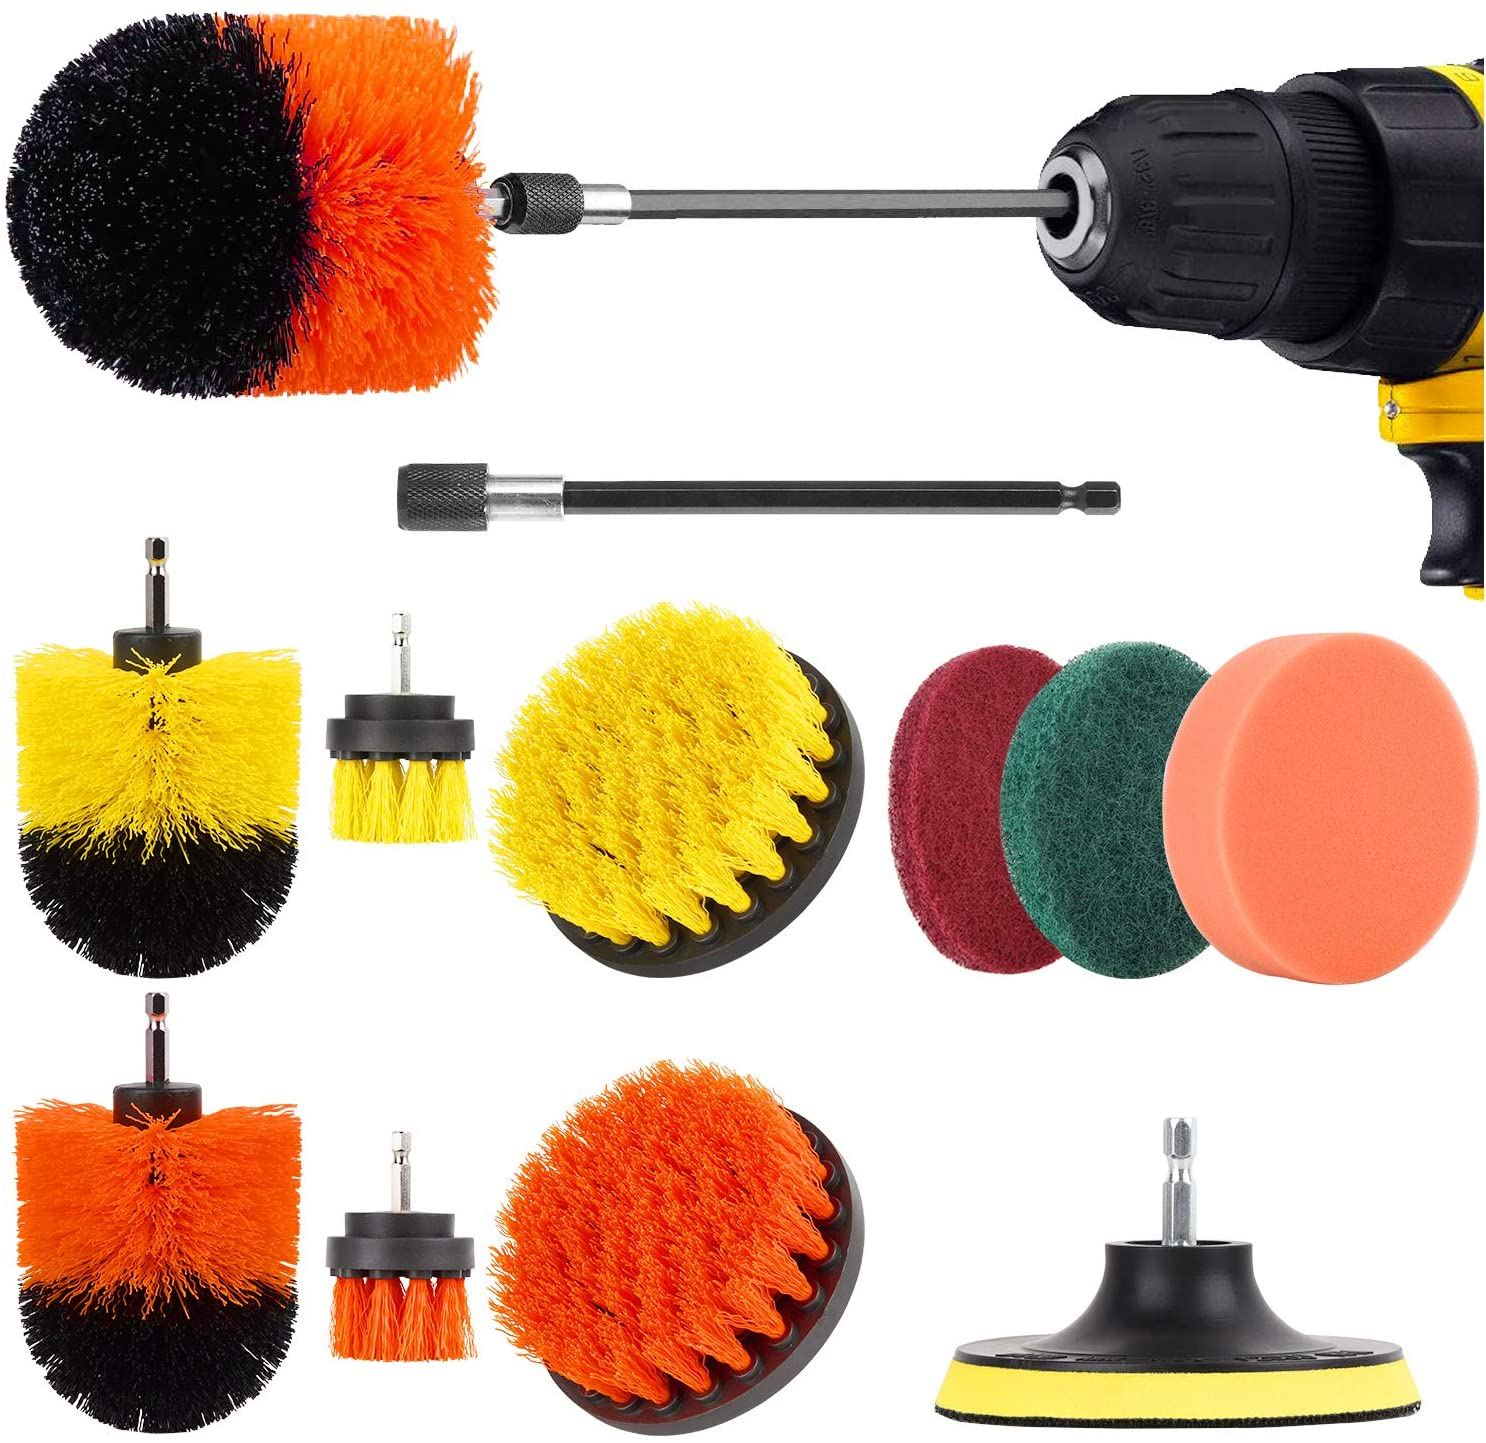 Product image of Herrfilk Drill Brush Attachment Set